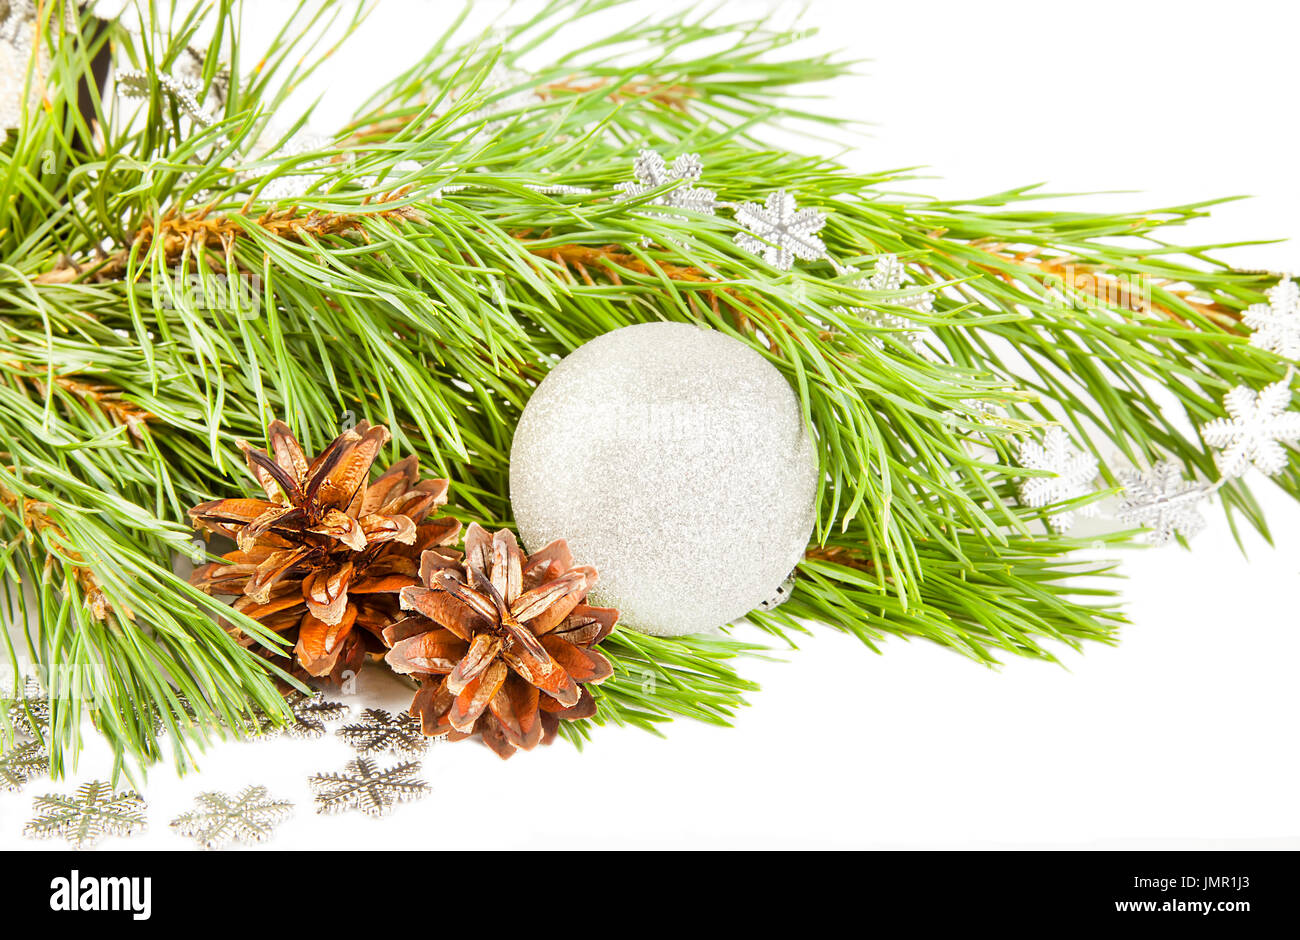 Christmas composition with fir tree, cones and silver ball isolated on white background - Stock Image